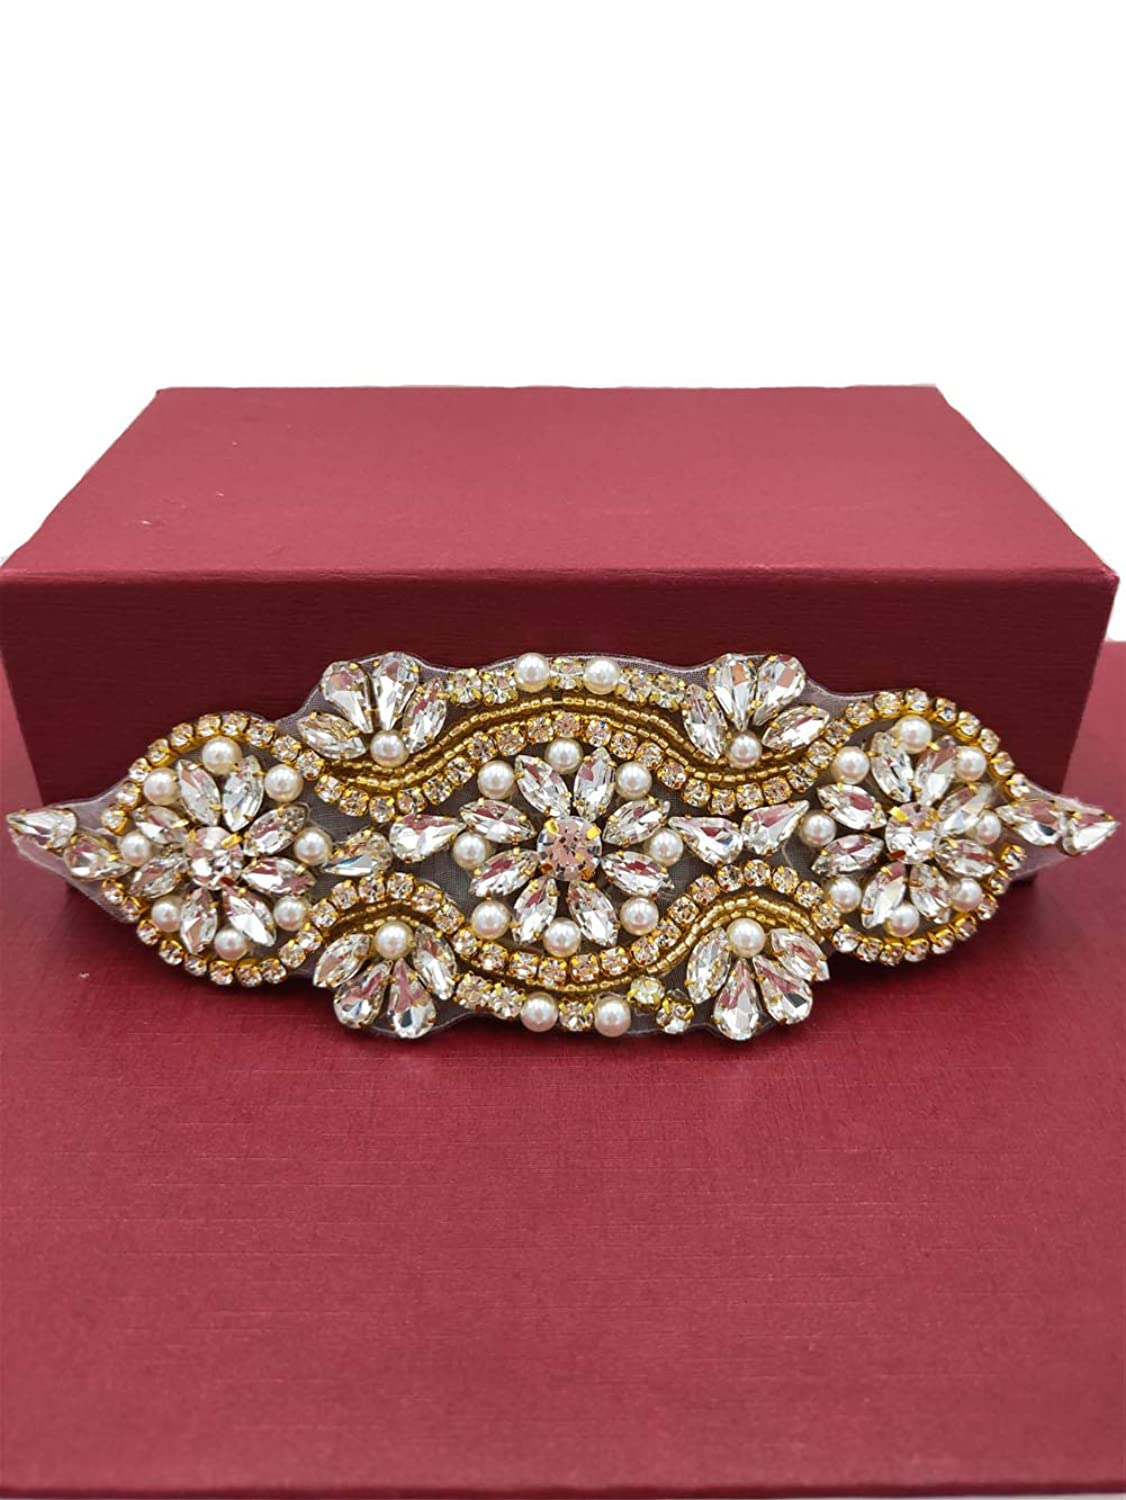 Bridal Beaded Rhinestone Belt Appliques, Small Size Crystal Wedding Applique Sew Iron on Pearl Applique for Women Dress Bridal Ribbon Belt Garter Headpiece Shoes Clothes Decoration